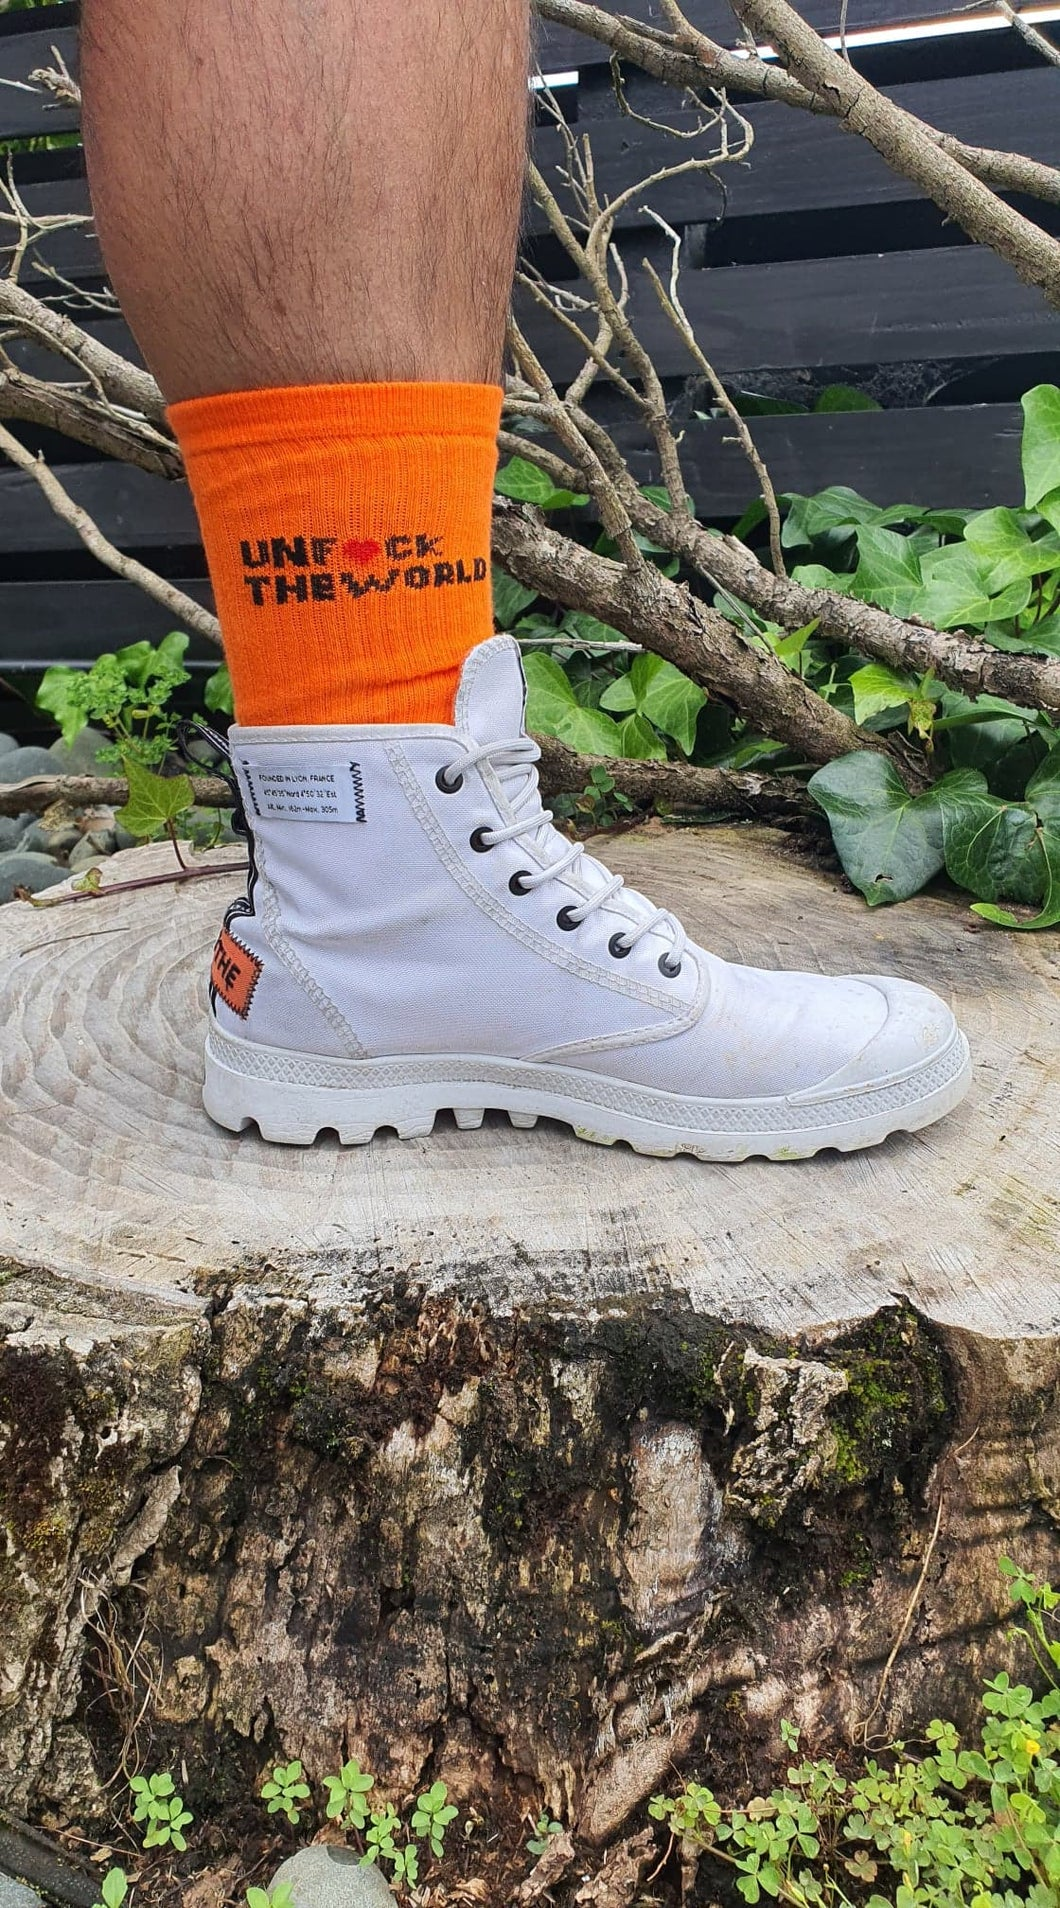 Unisex: Unf*ck The World Socks in Hot Orange